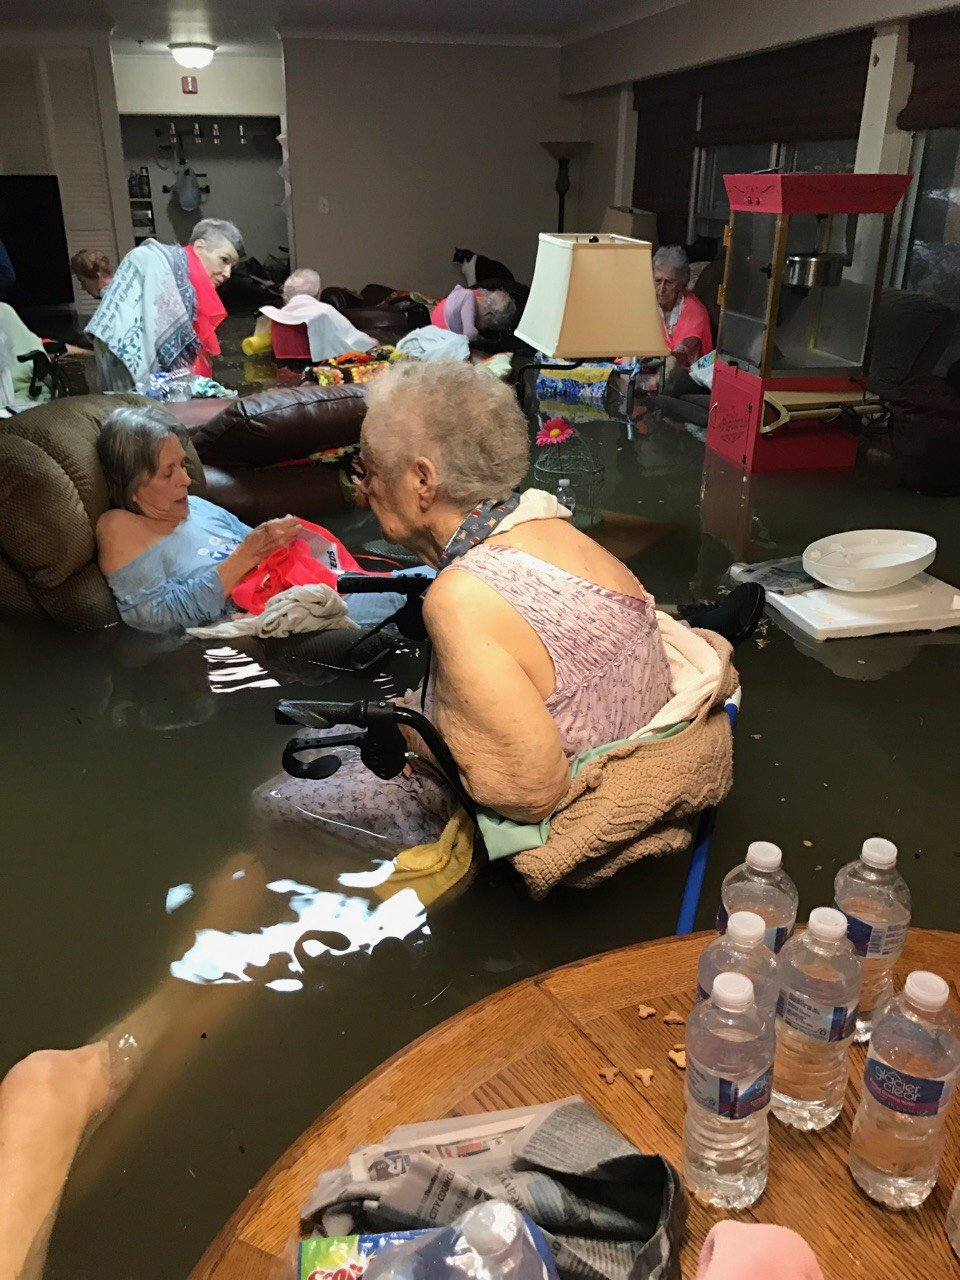 Residents of La Vita Bella nursing home in Dickinson, Texas were trapped due to severe flooding from Hurricane Harvey on Aug. 27.